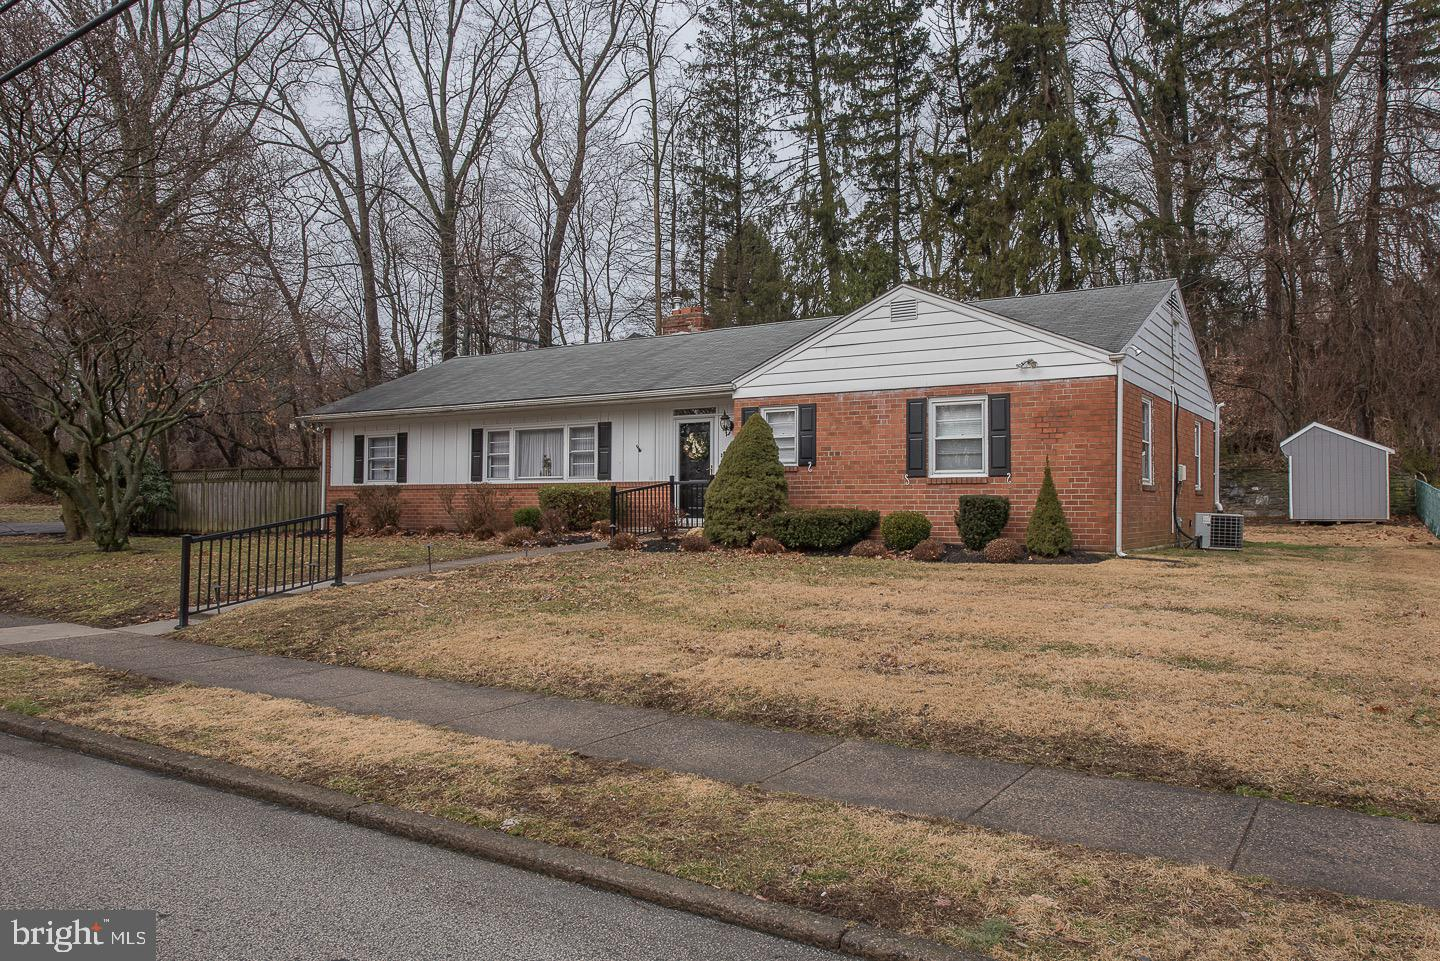 56 S BROOKSIDE ROAD, SPRINGFIELD, PA 19064